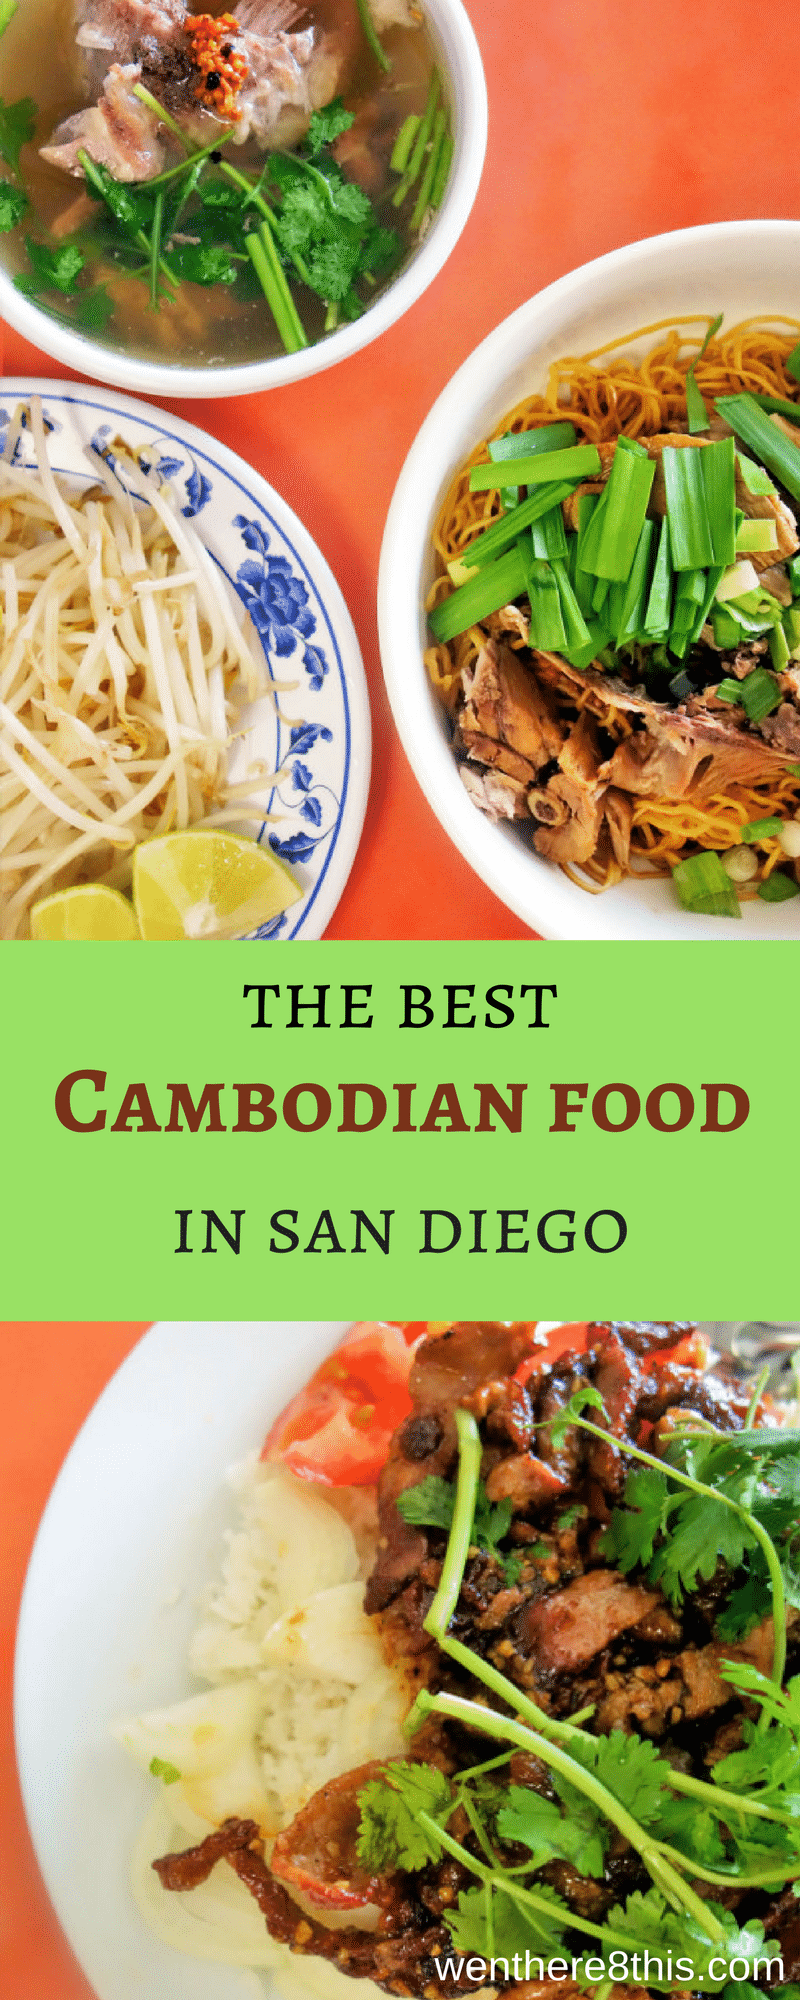 Learn here where you can find the best Cambodian food in San Diego. There may not be many, but they are tasty!cambodian food, best restaurants san diego, cambodian restaurants, san diego eats, asian restaurants san diego, san diego Cambodian food, southeast Asian cuisine, beef lok lak, bone broth, bone soup, duck noodle soup, roasted duck, san diego eats, eater san diego, #cambodianfood #goodeatssandiego #sandiegorestaurants